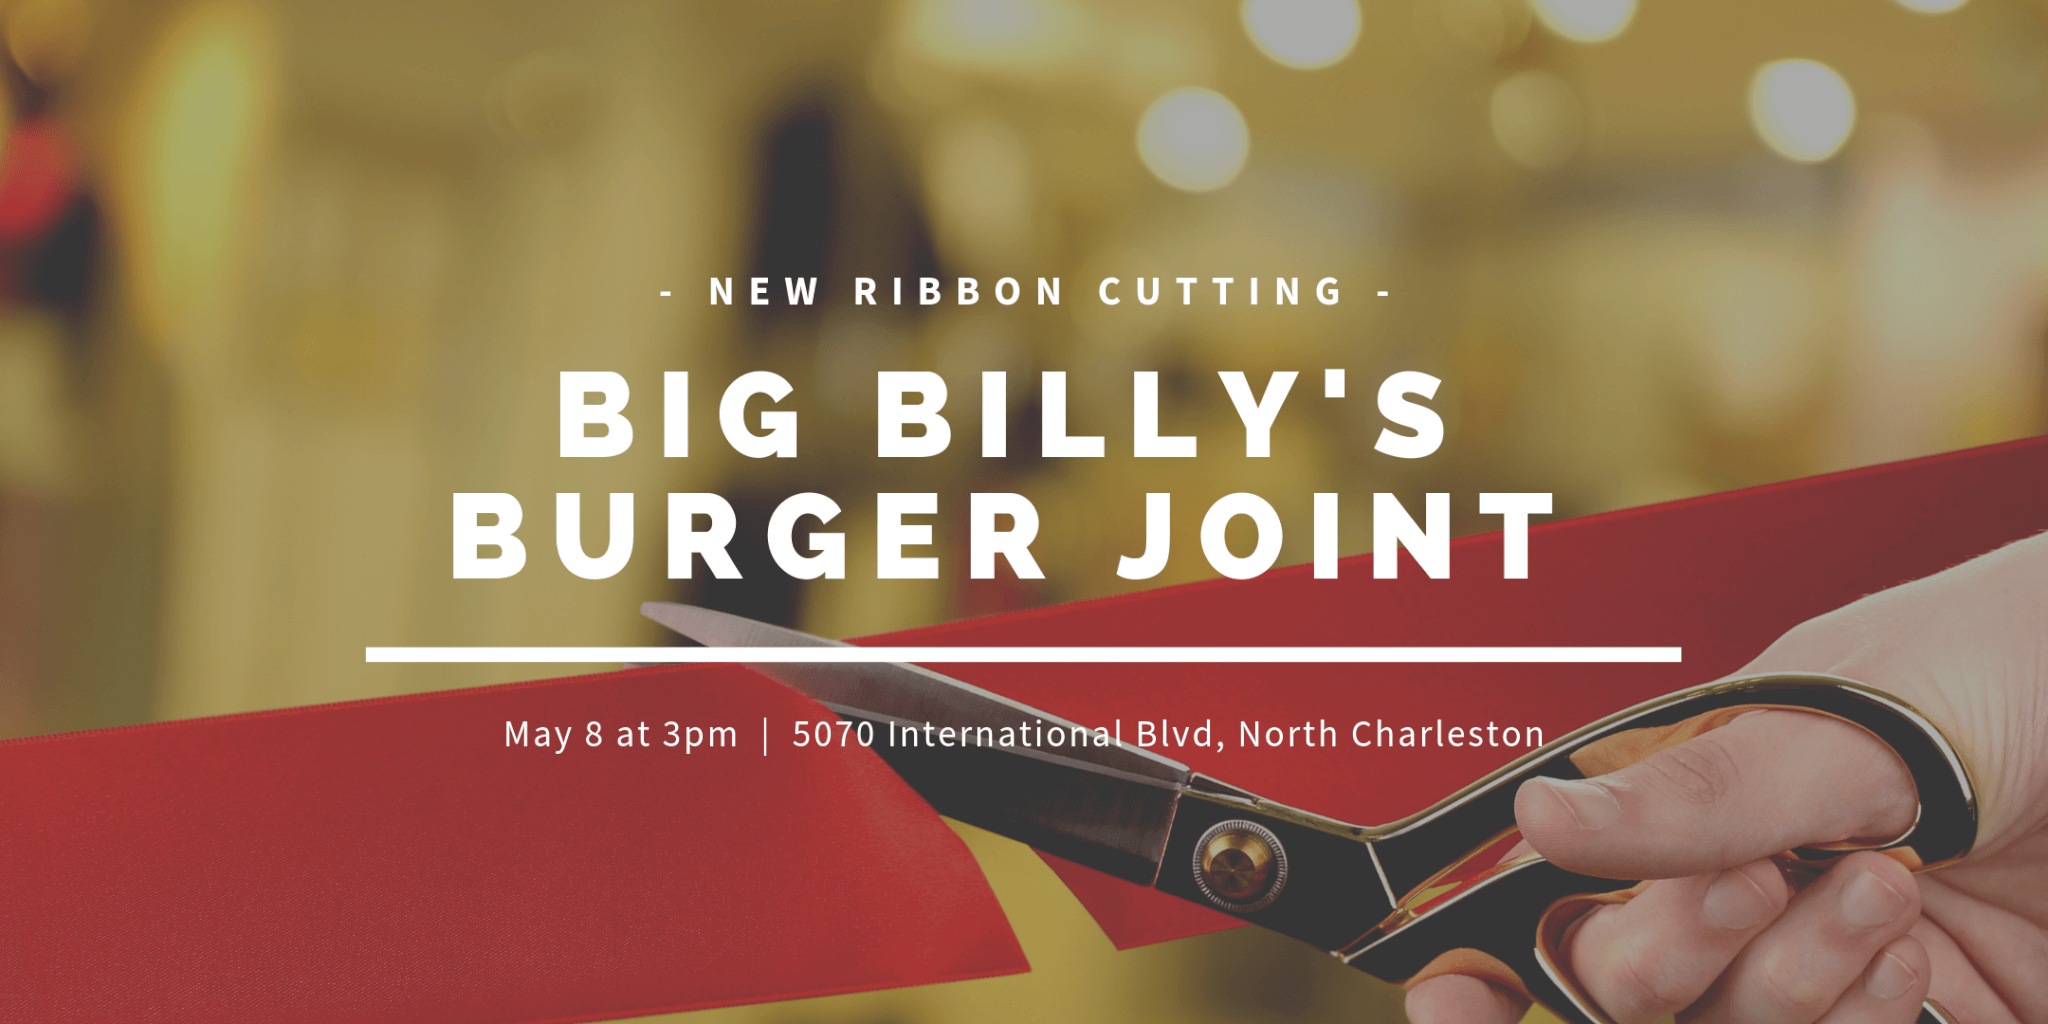 Big Billy's Burger Joint Ribbon Cutting